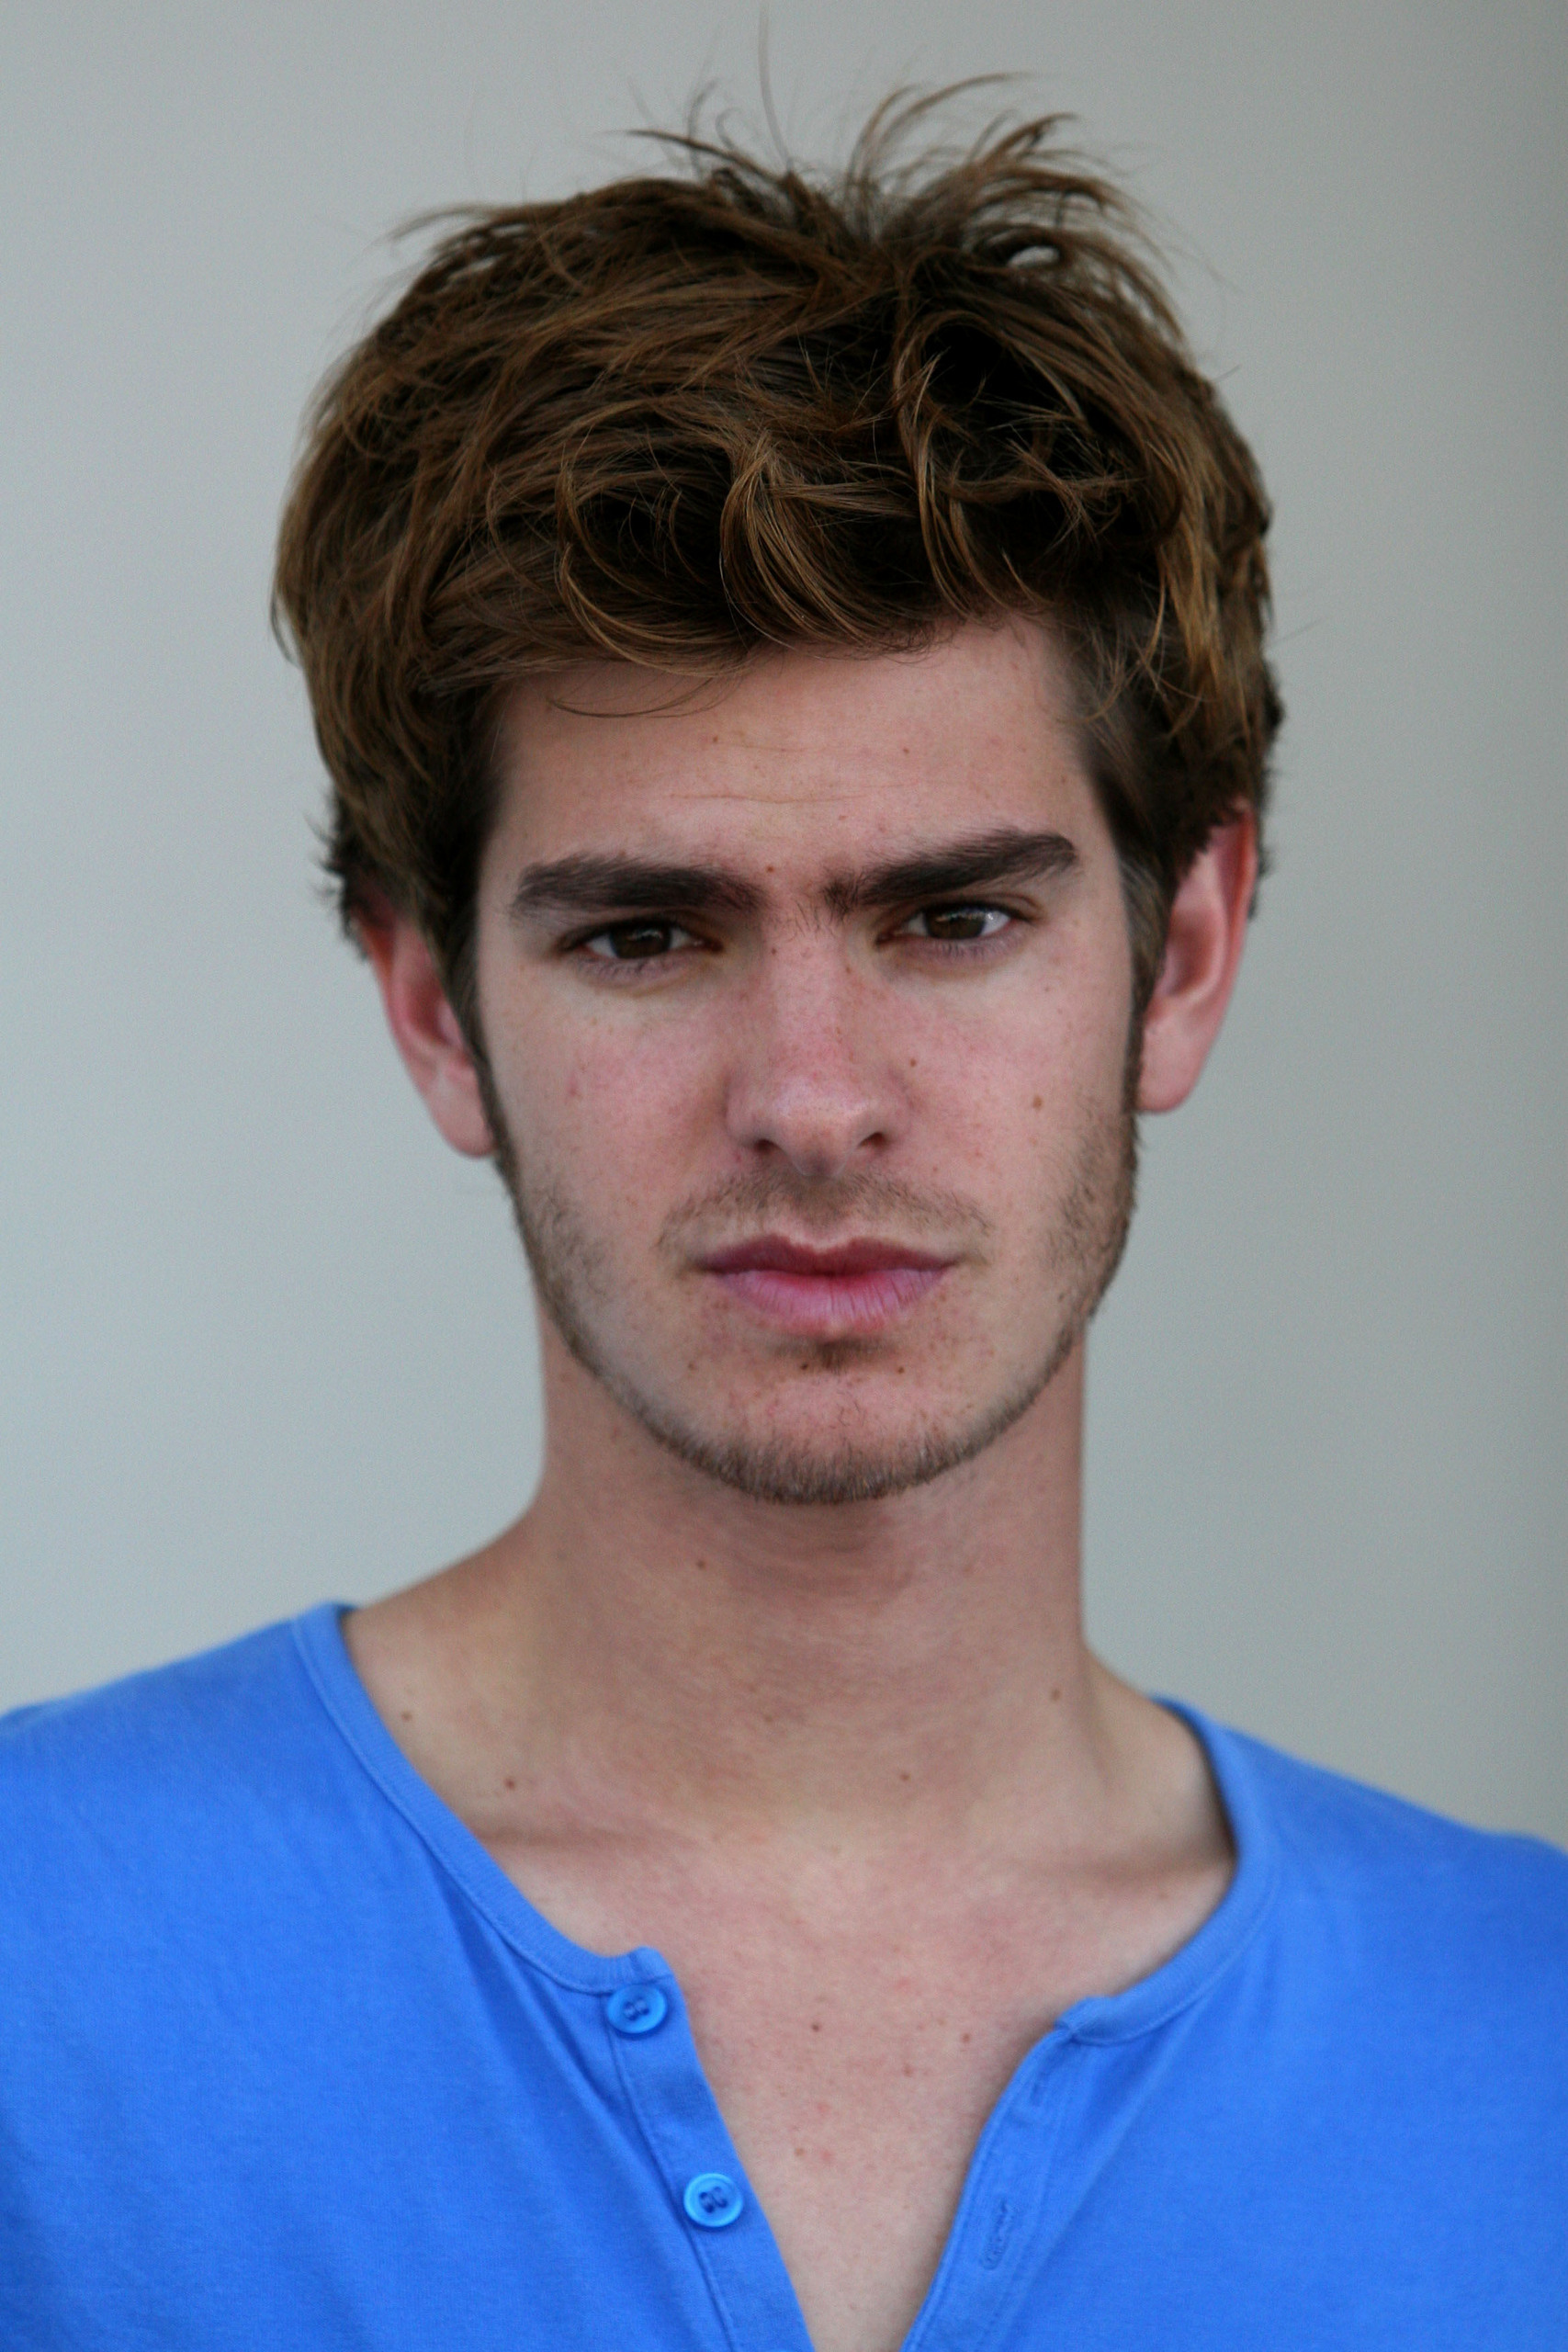 Andrew Garfield - Imag... Andrew Garfield Actor